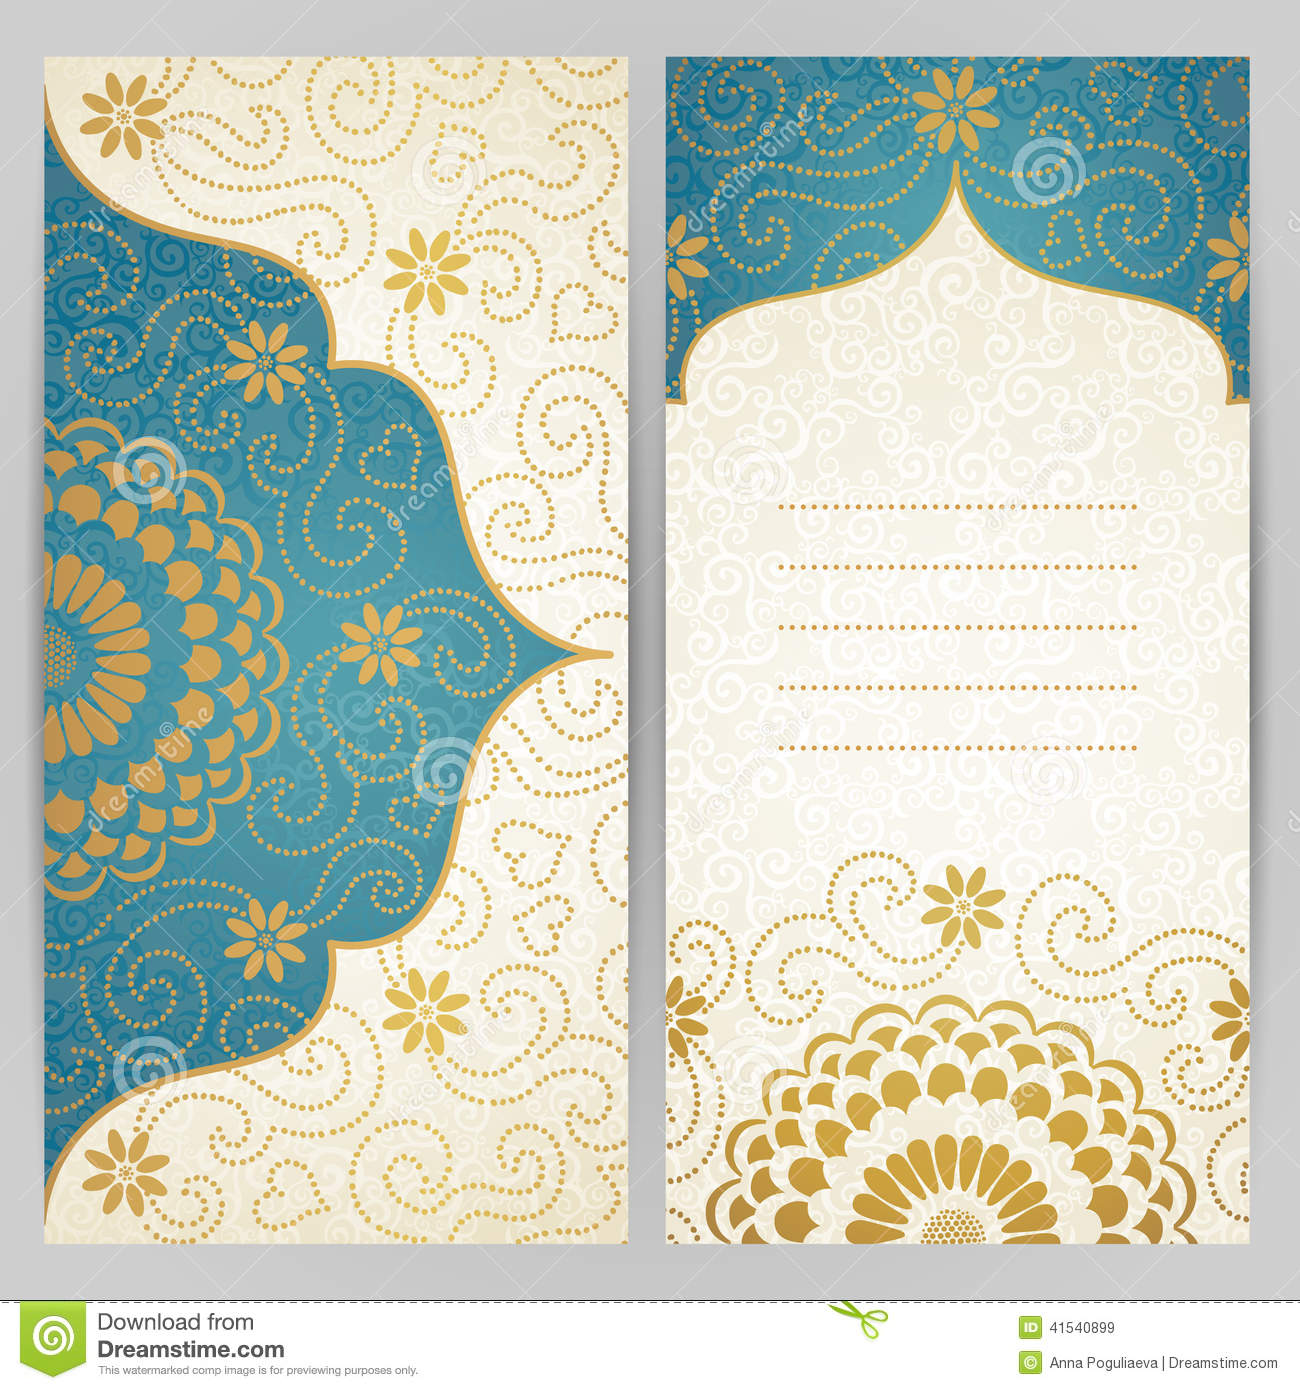 Vintage Ornate Cards With Flowers And Curls Stock Vector